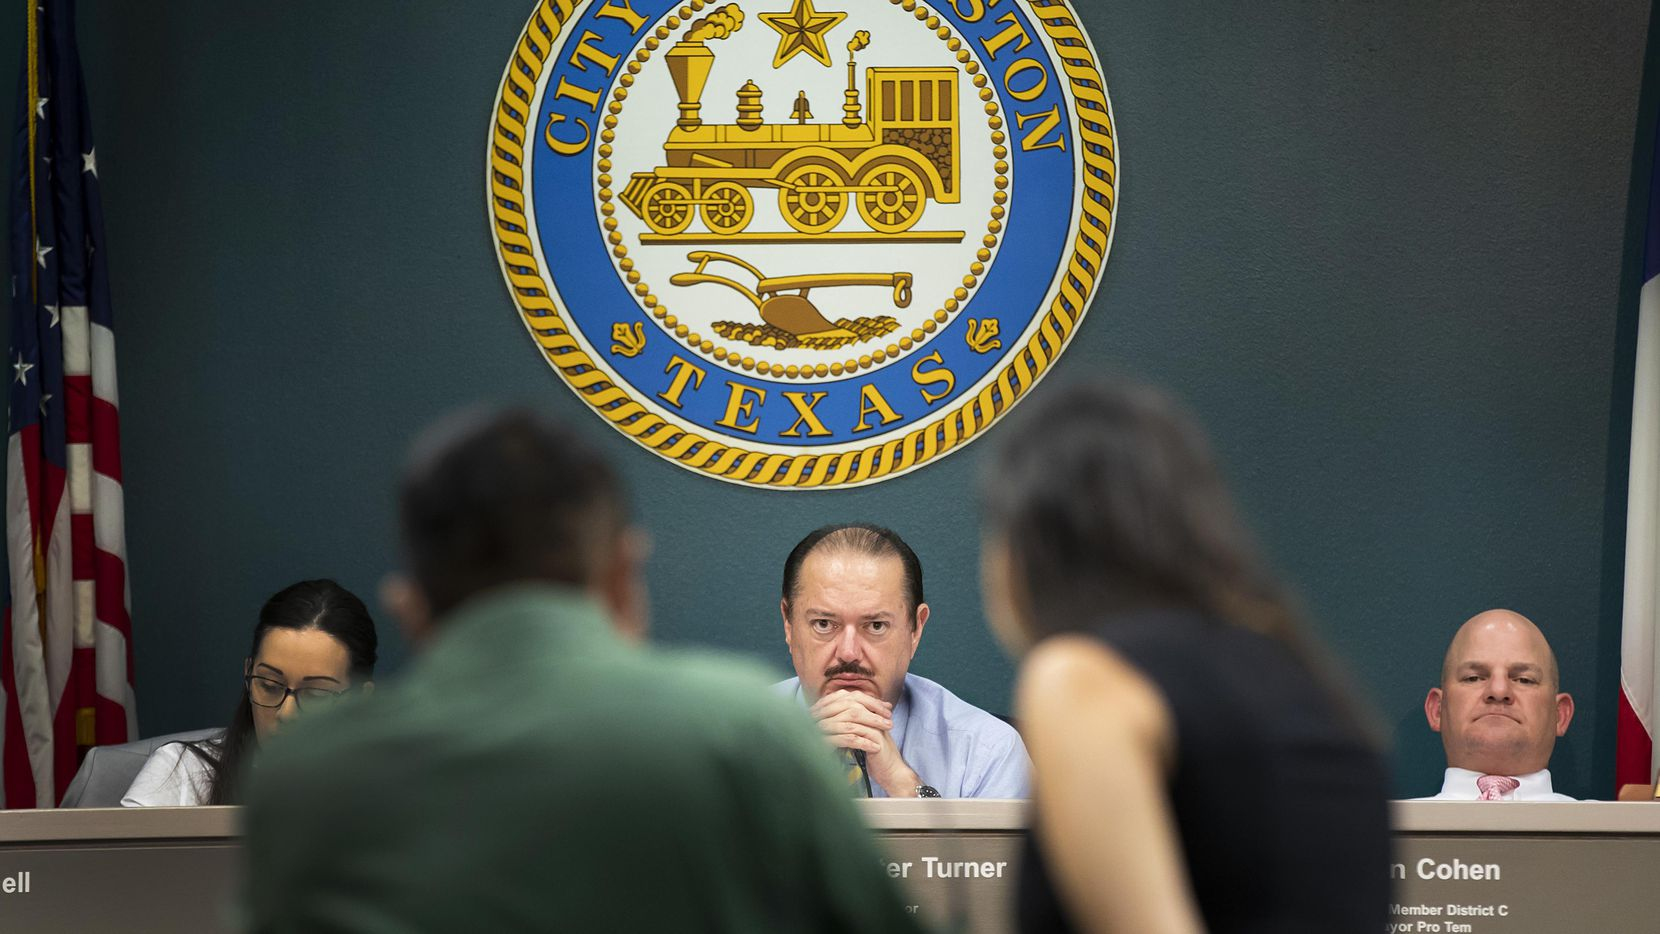 State Rep. Rene Oliveira (center), chairman of the Texas House Business and Industry Committee, listens as Ana Gonzalez, a policy advocate for Workers Defense Project (right), translates for worker Agustin Villanueva as he testifies about wage theft at a committee meeting at Houston City Hall on July 24, 2018, in Houston.